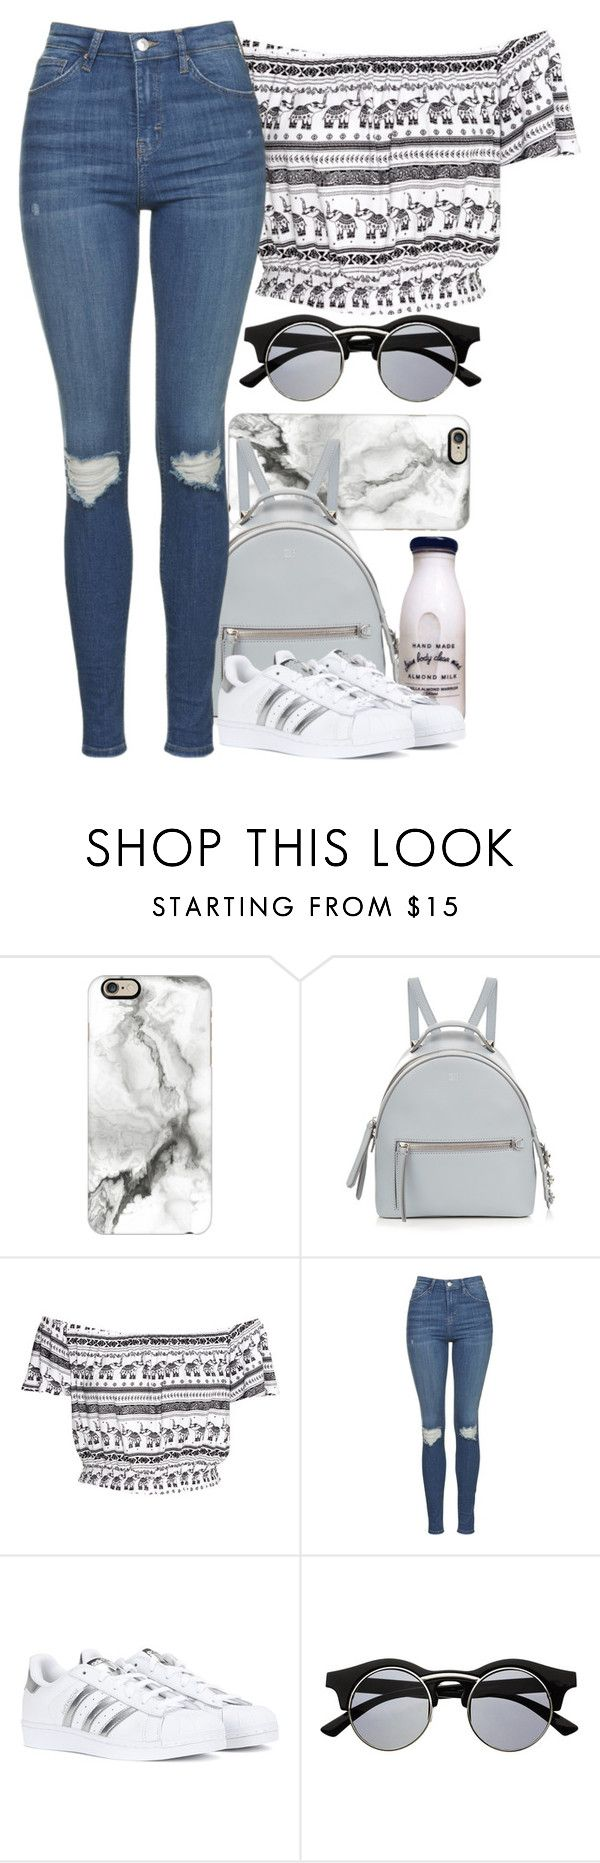 """""""Casual"""" by eduardacardoso1999 ❤ liked on Polyvore featuring Casetify, Fendi, H&M, Topshop, adidas and Retrò"""